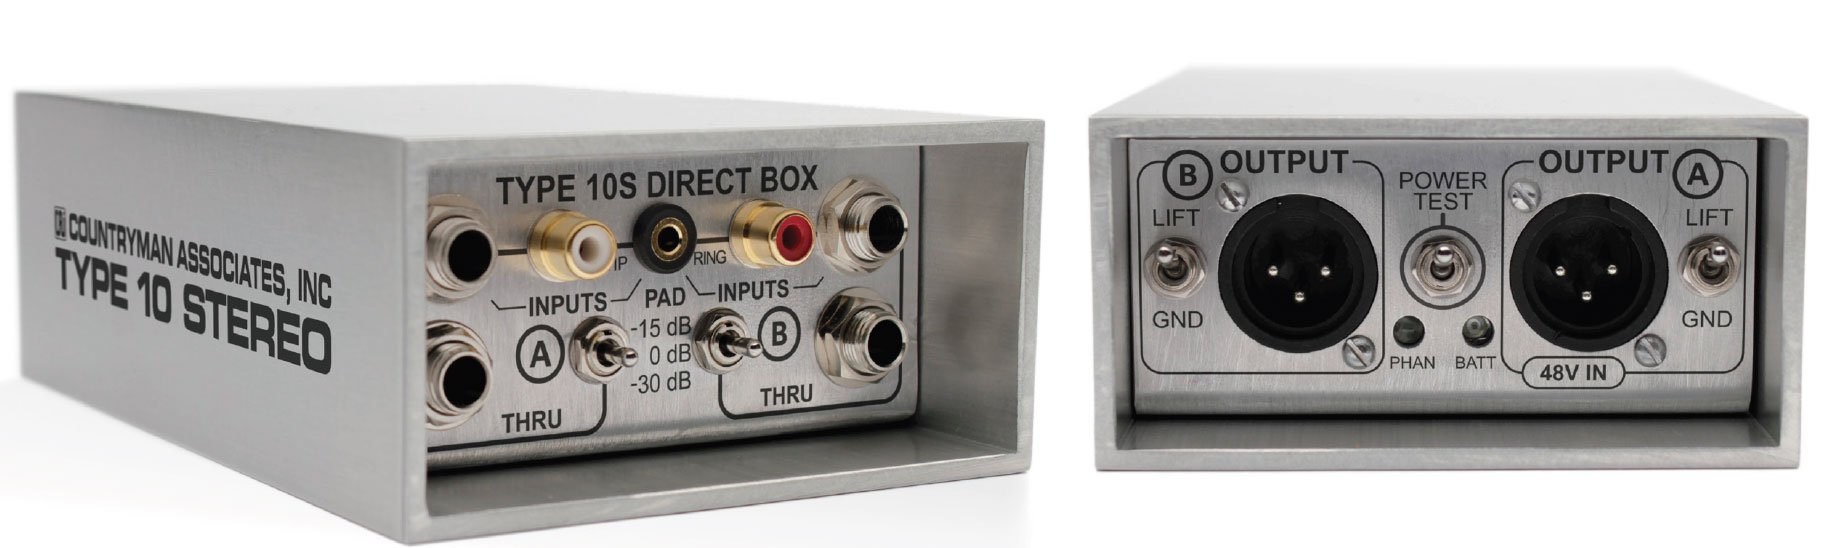 Type 10 S 2-Channel FET Direct Box